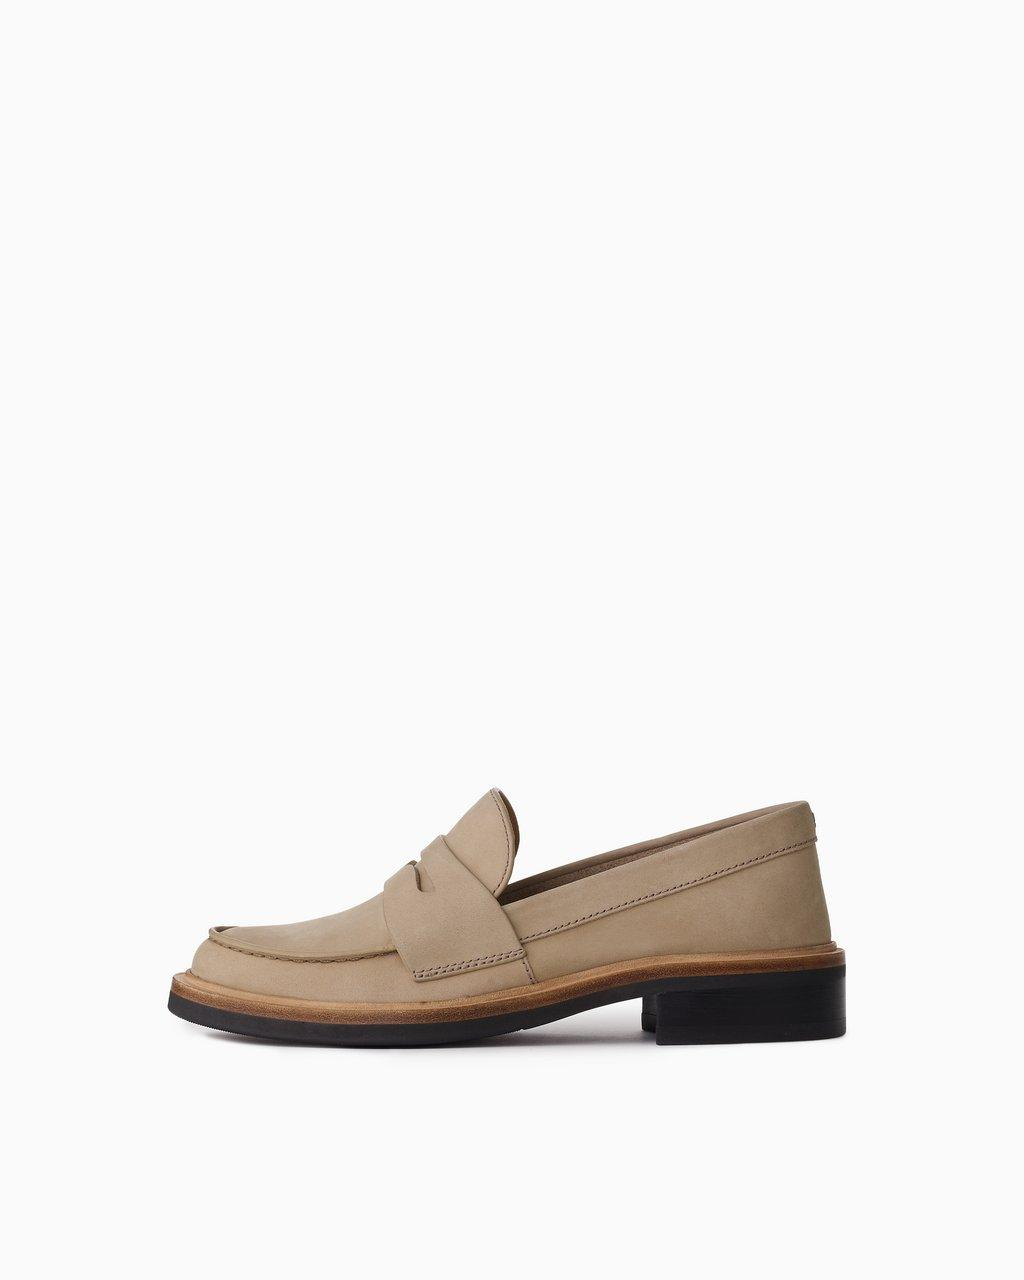 Slayton Loafer - Nubuck